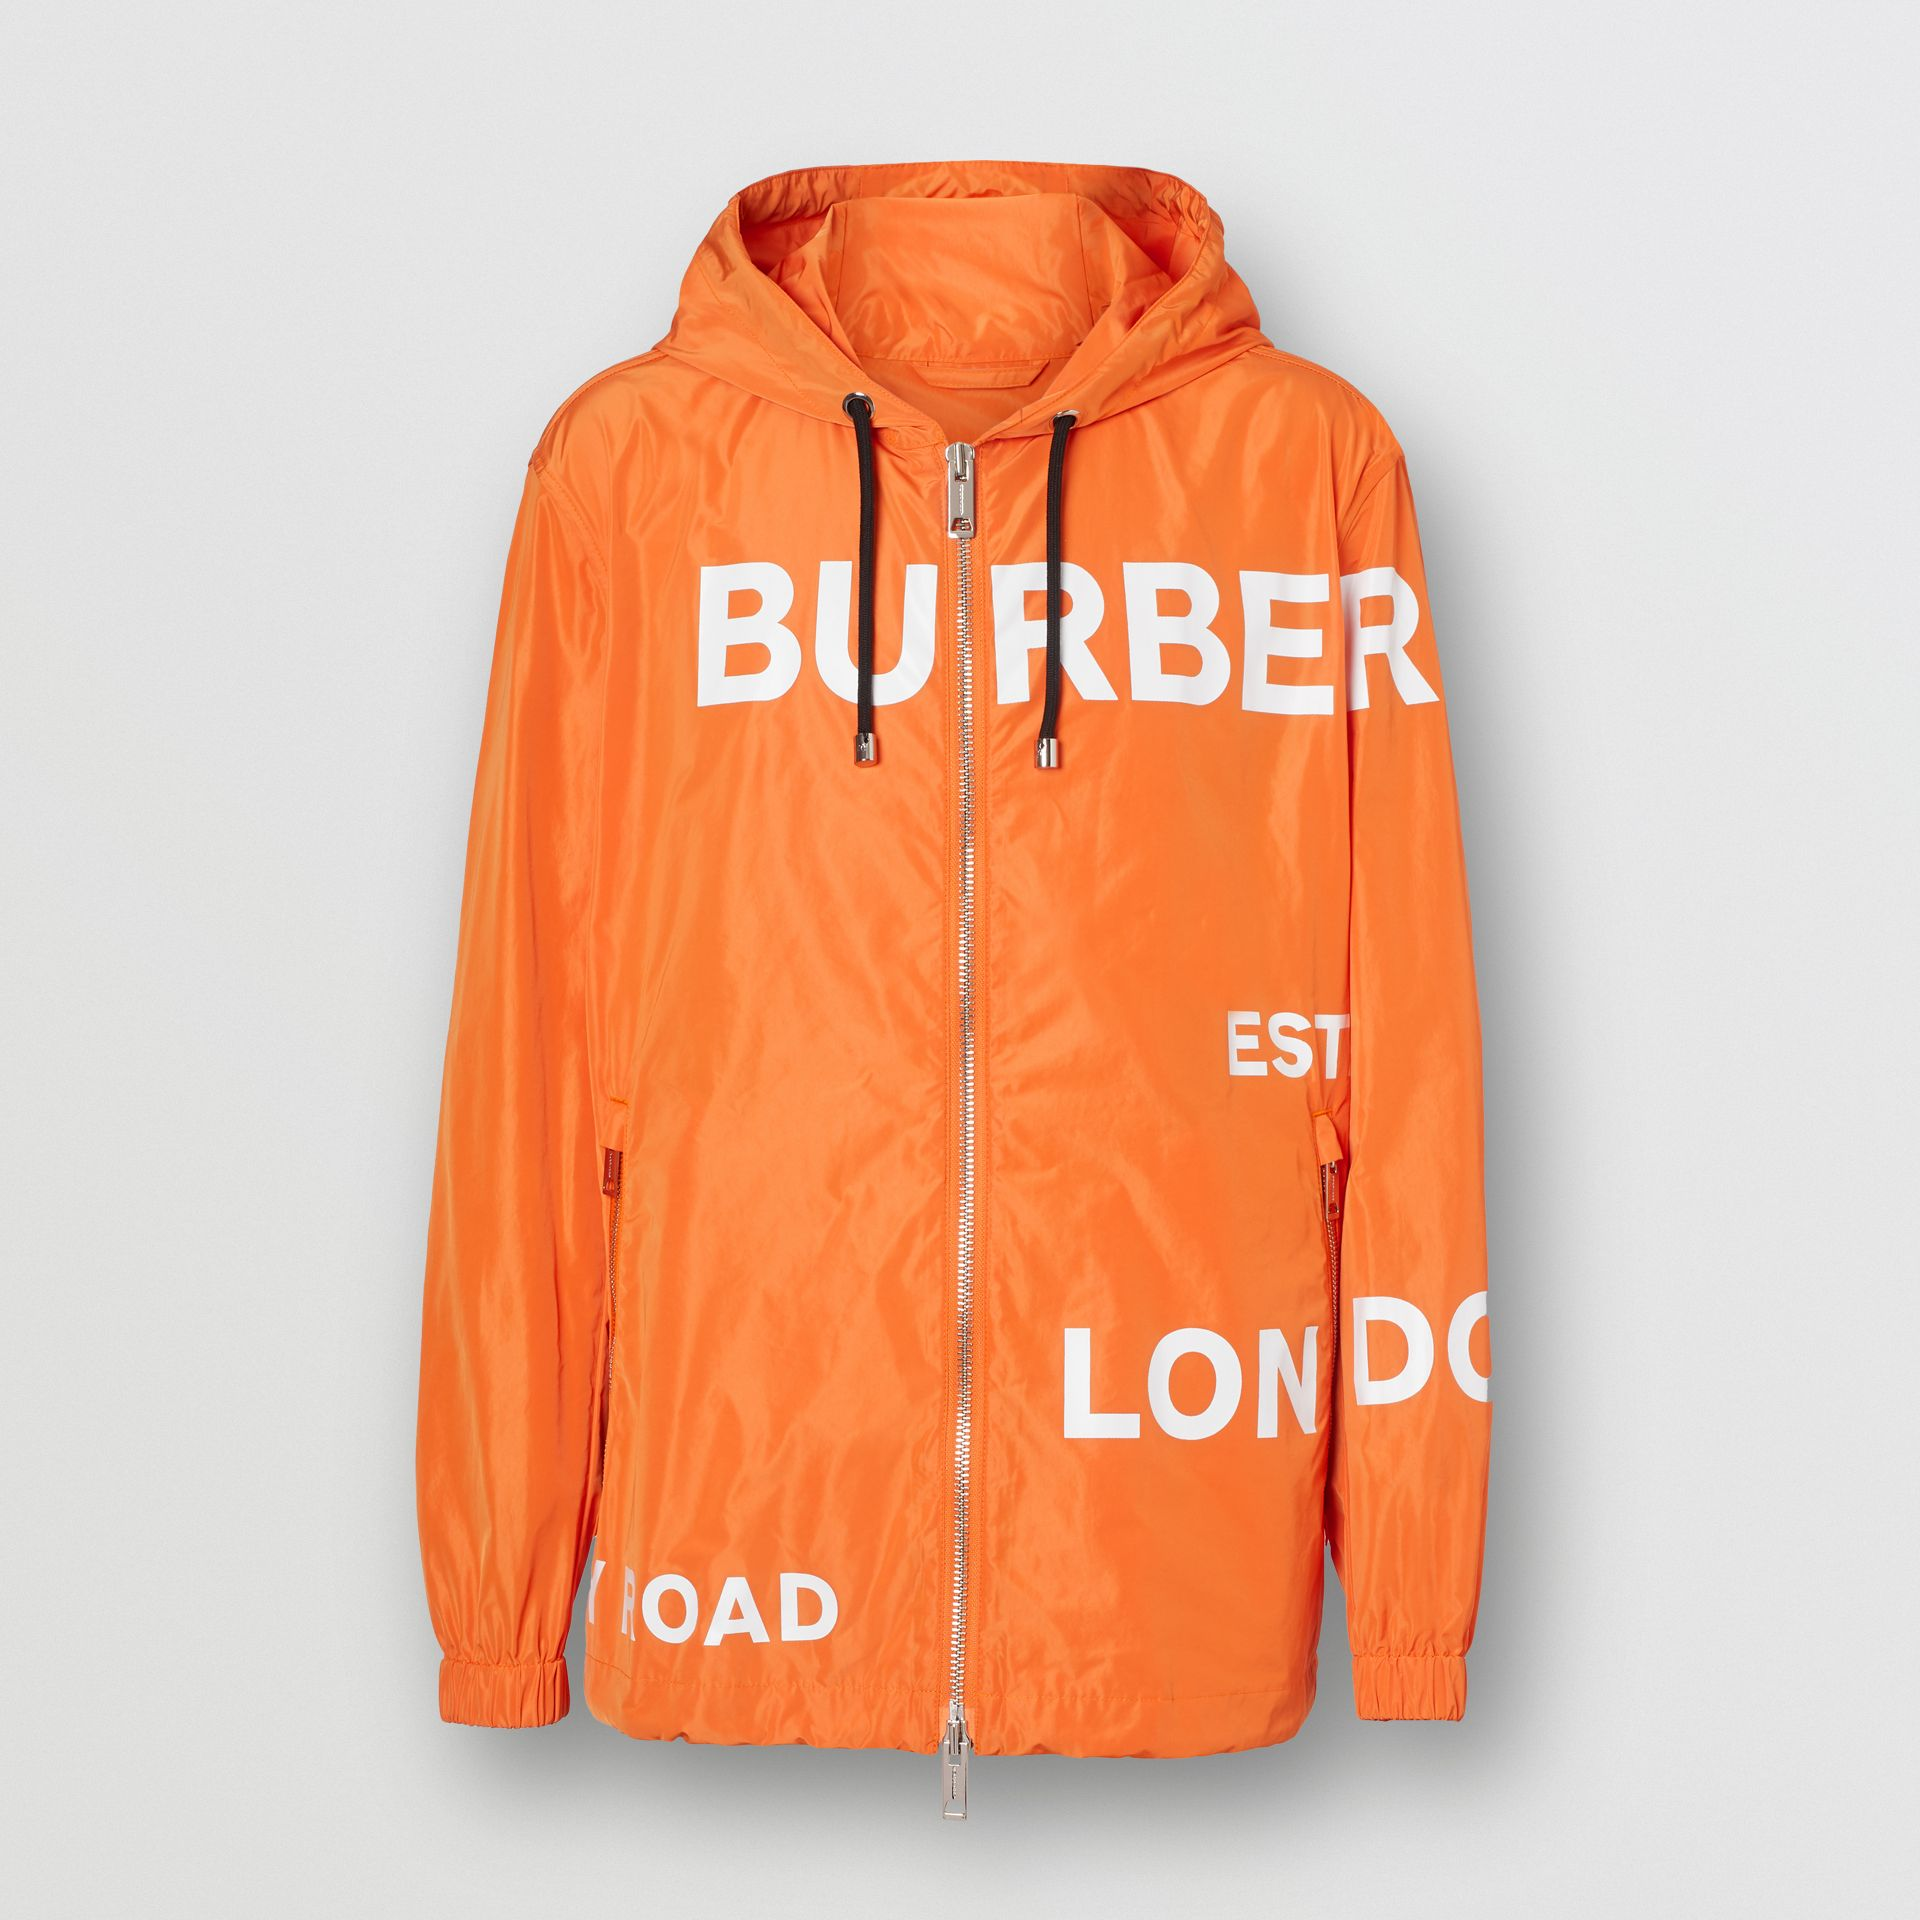 Veste à capuche en nylon Horseferry (Orange Vif) - Homme | Burberry - photo de la galerie 3